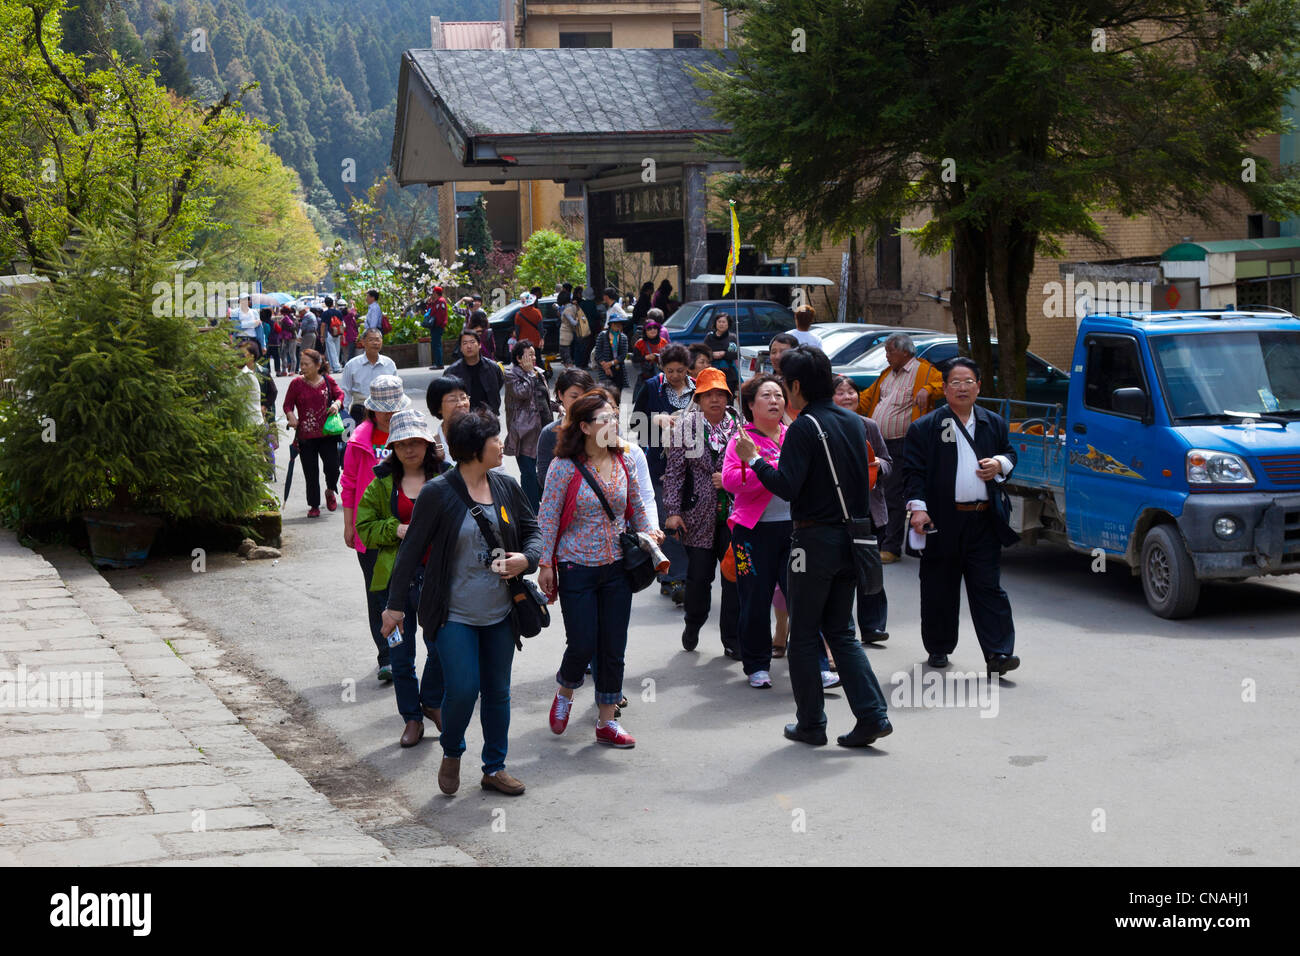 Party of tourists from mainland China with tour guide outside Alishan Gou Hotel in Alishan Taiwan. JMH5912 - Stock Image